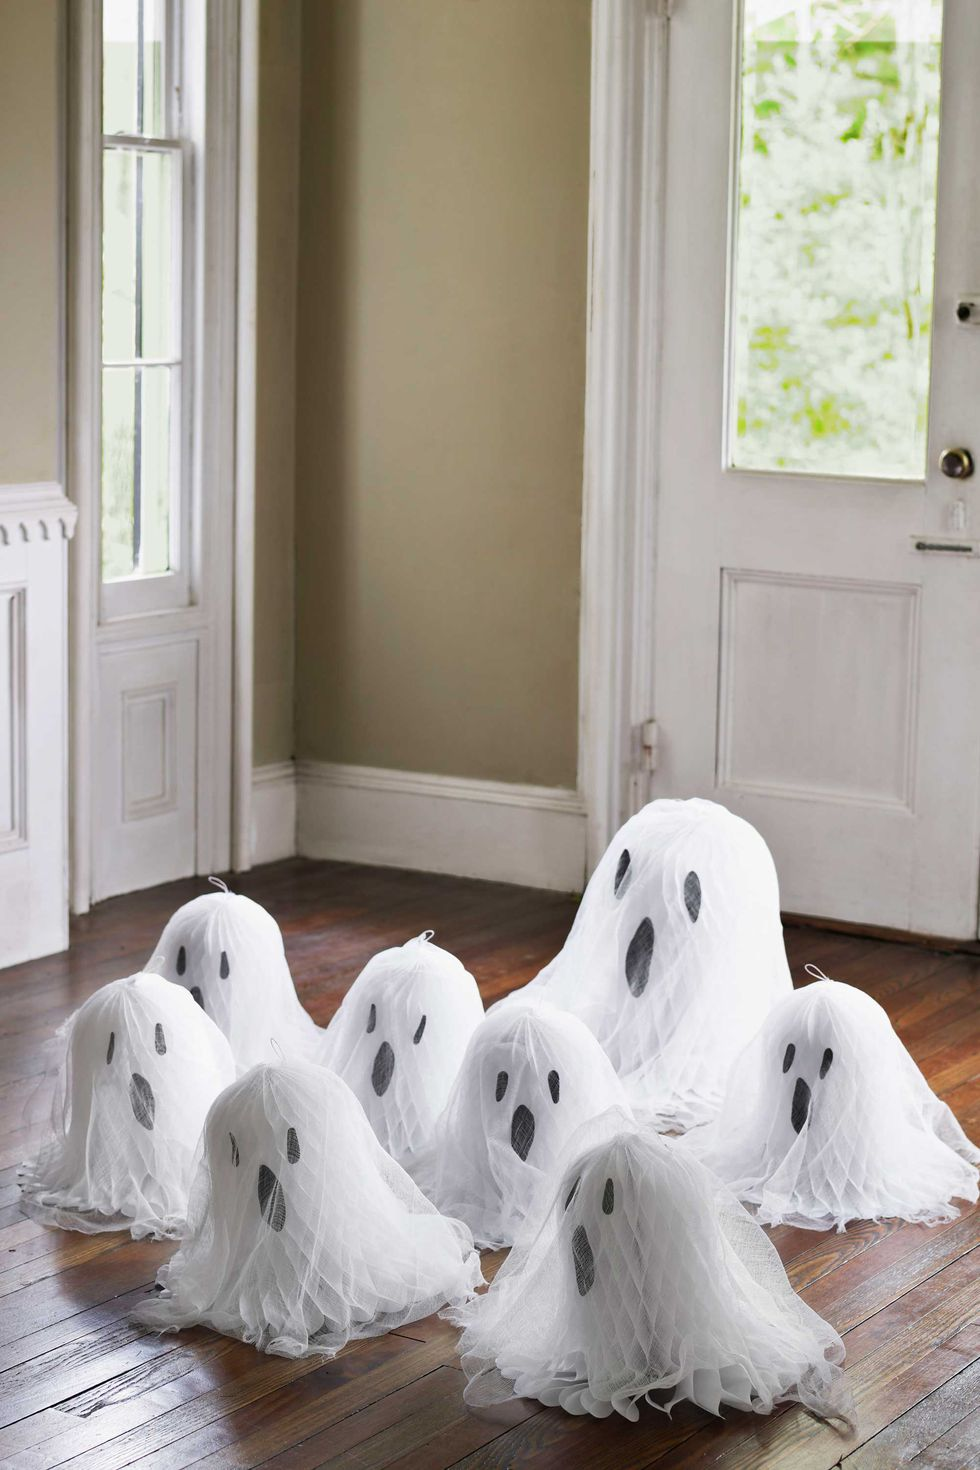 Tissue Paper Ghosts: These 30 DIY Halloween Decorations That Are Wickedly Creative will save you money and allow your creativity to flourish